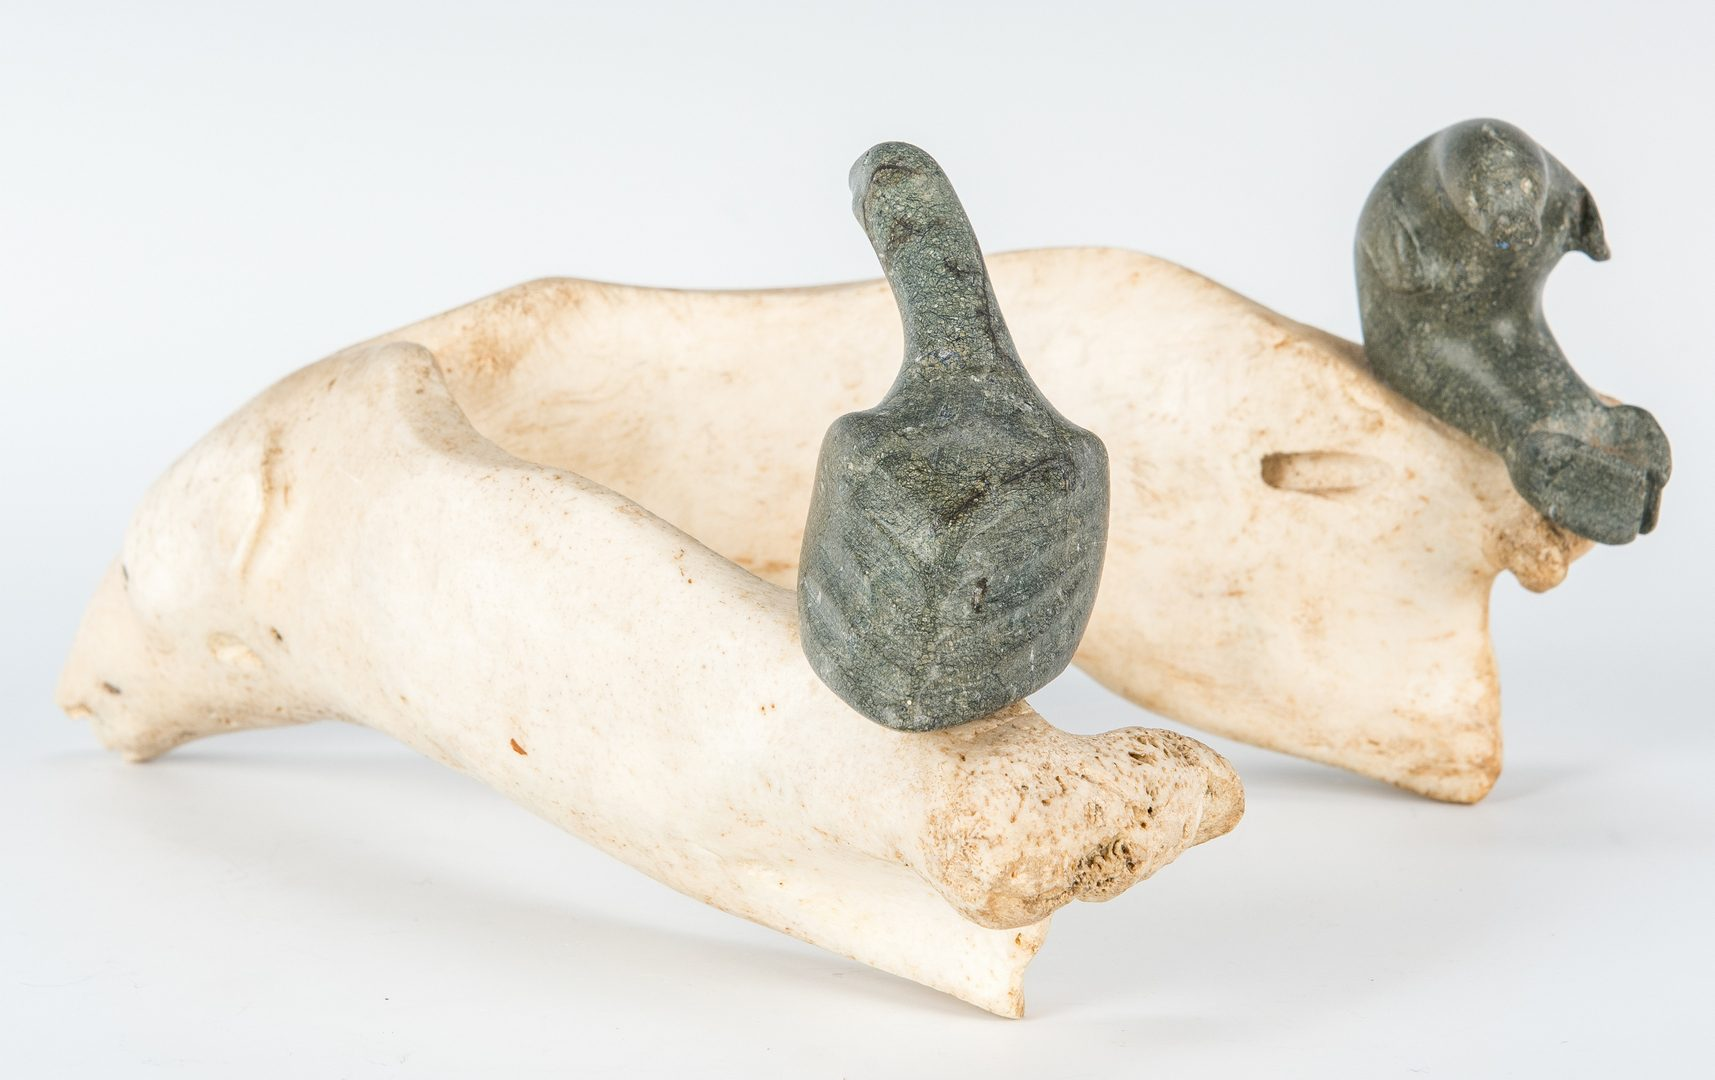 Lot 583: Inuit Carved Whalebone & Stone Sculpture